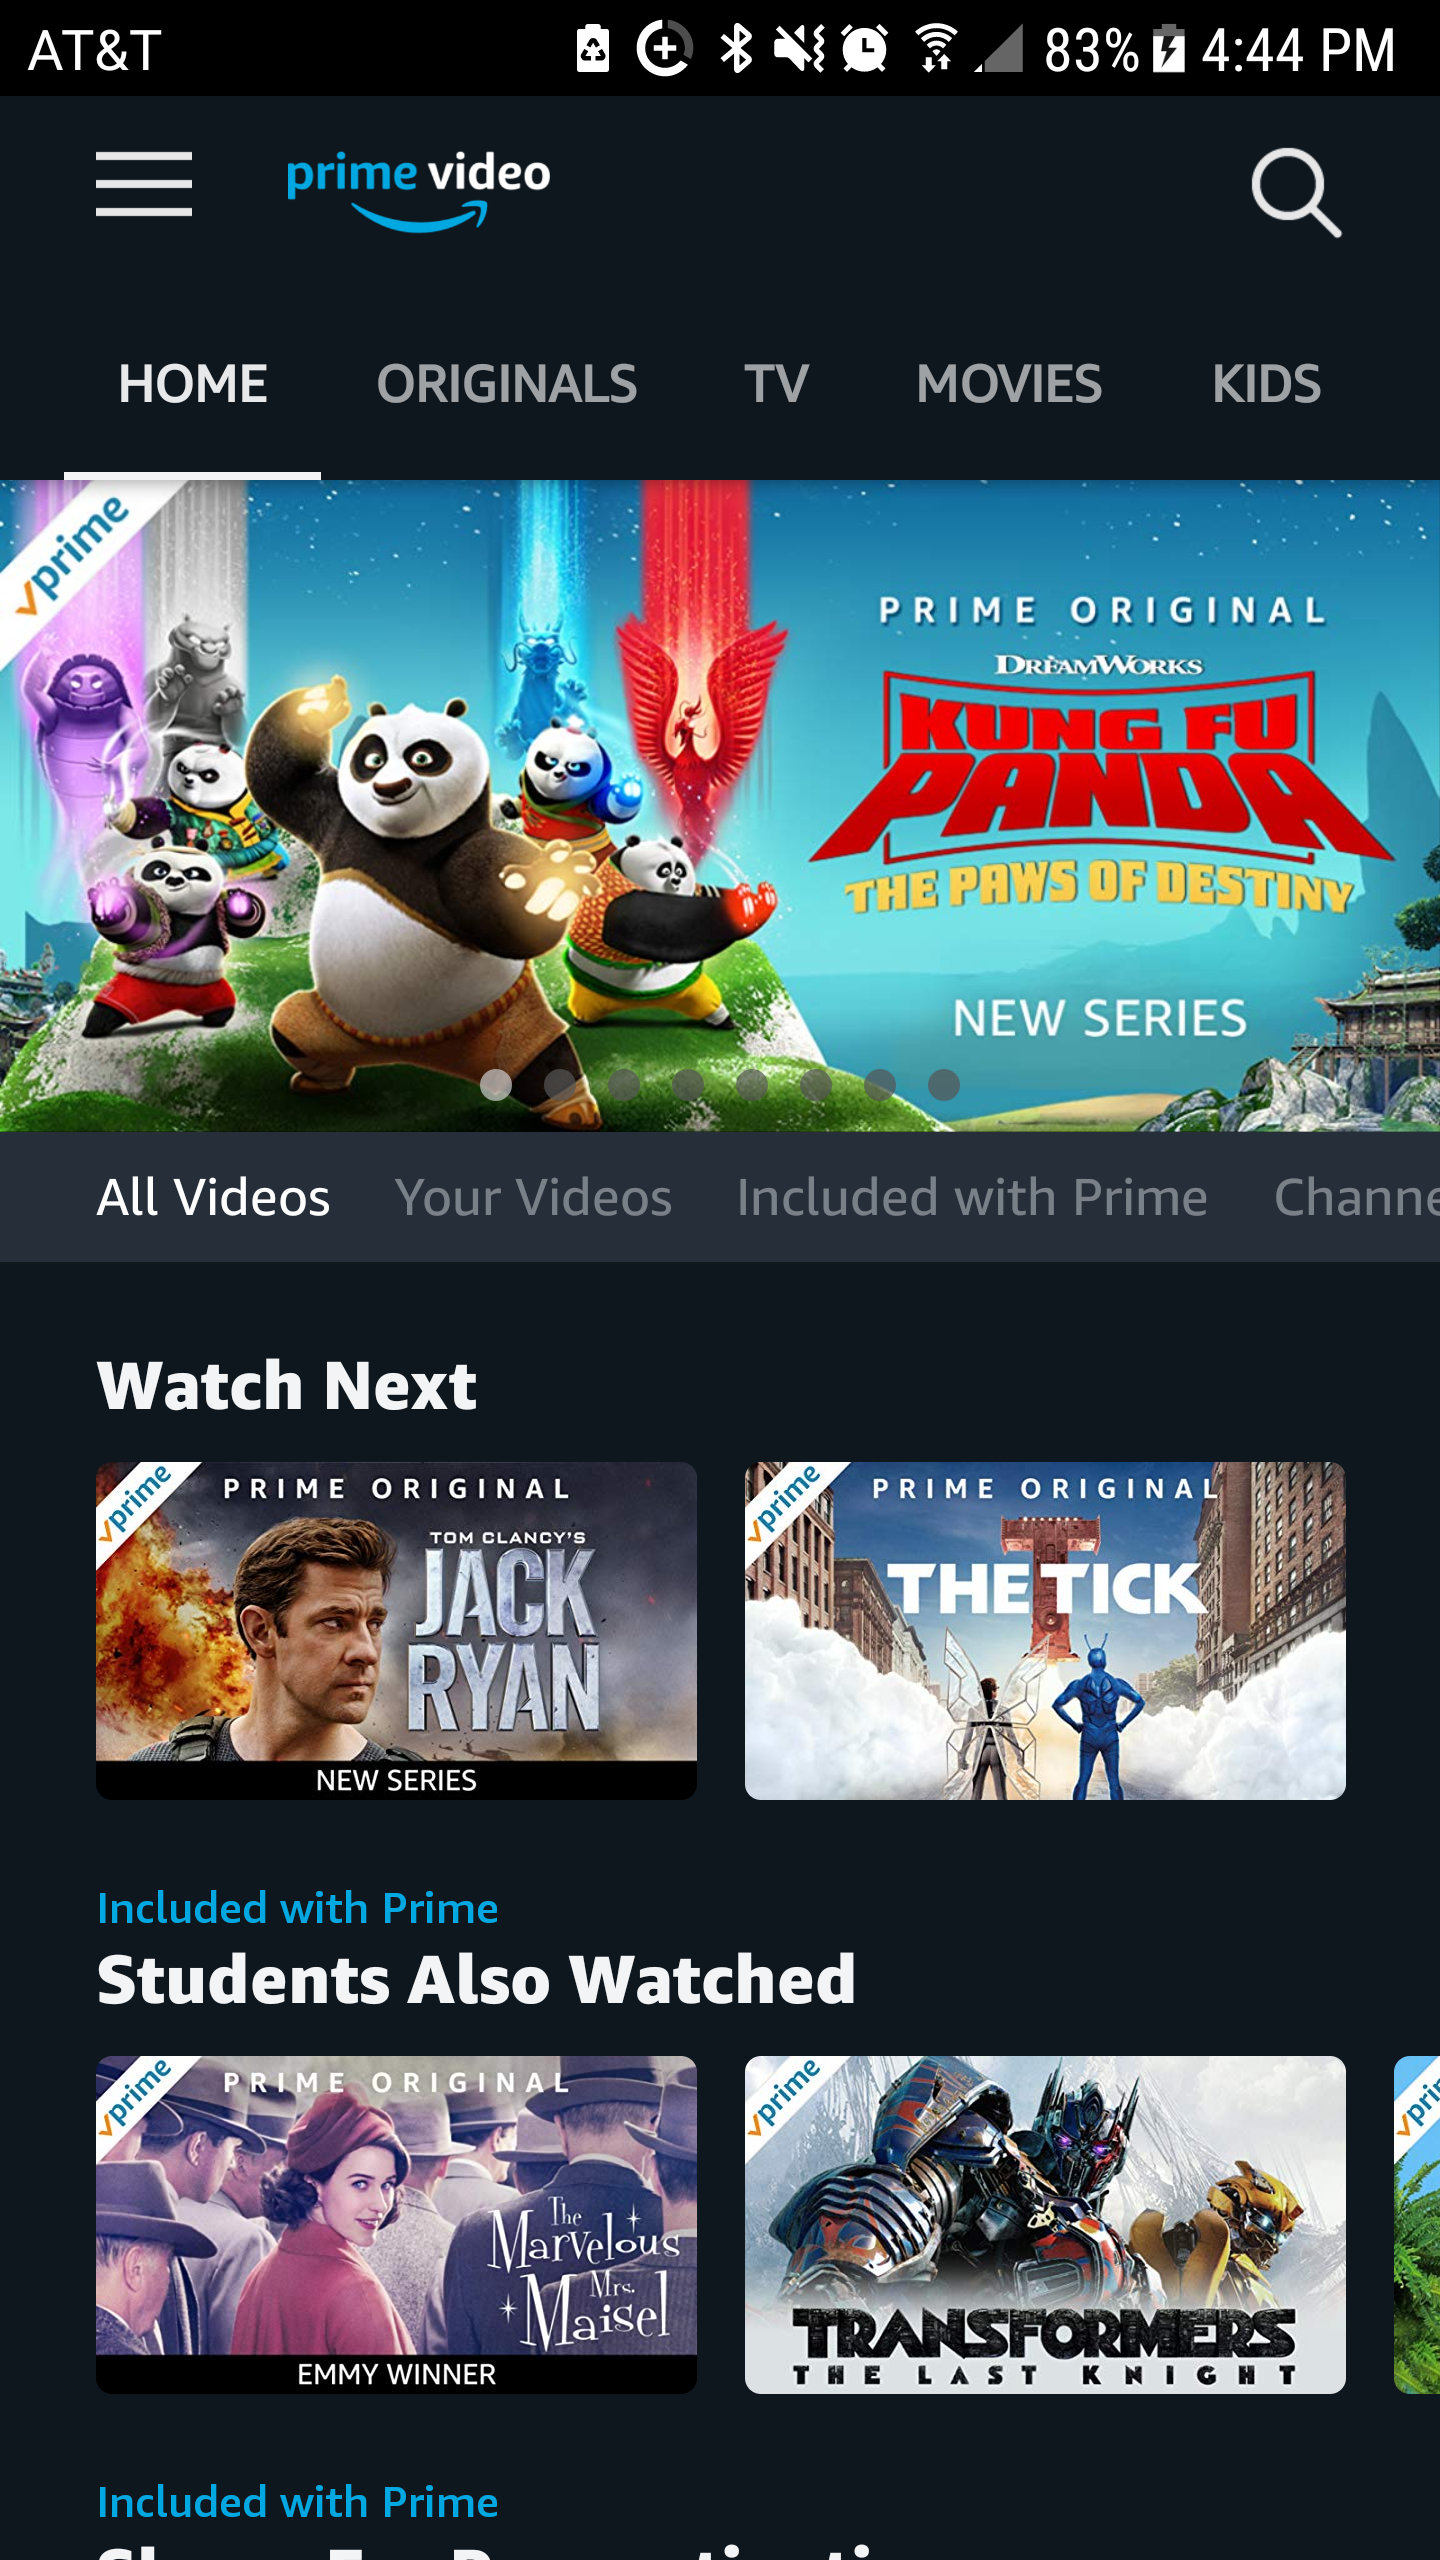 UX 1 Final: A Case Study of the Amazon Prime Video App